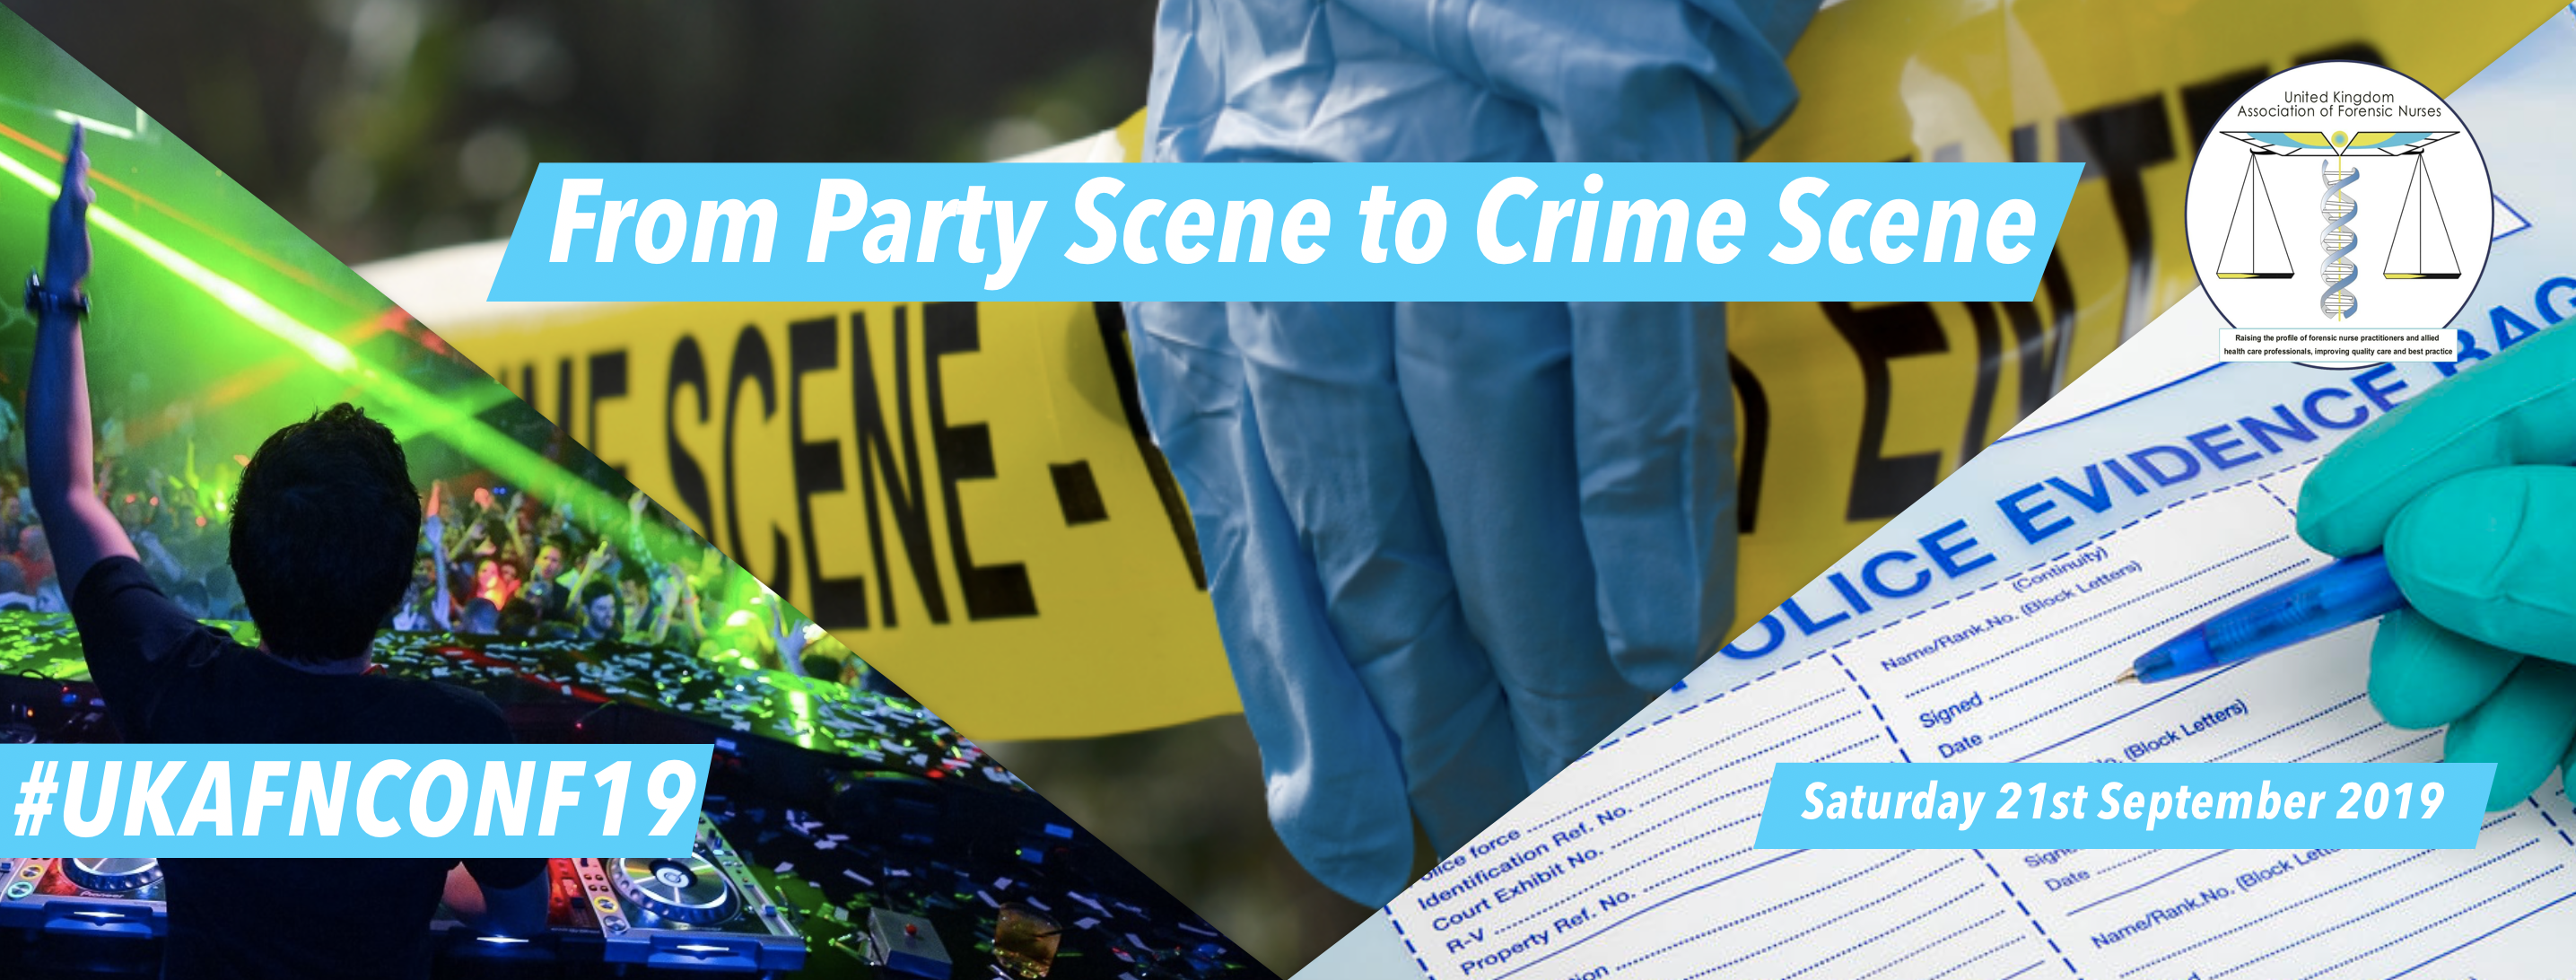 From party scene to crime scene